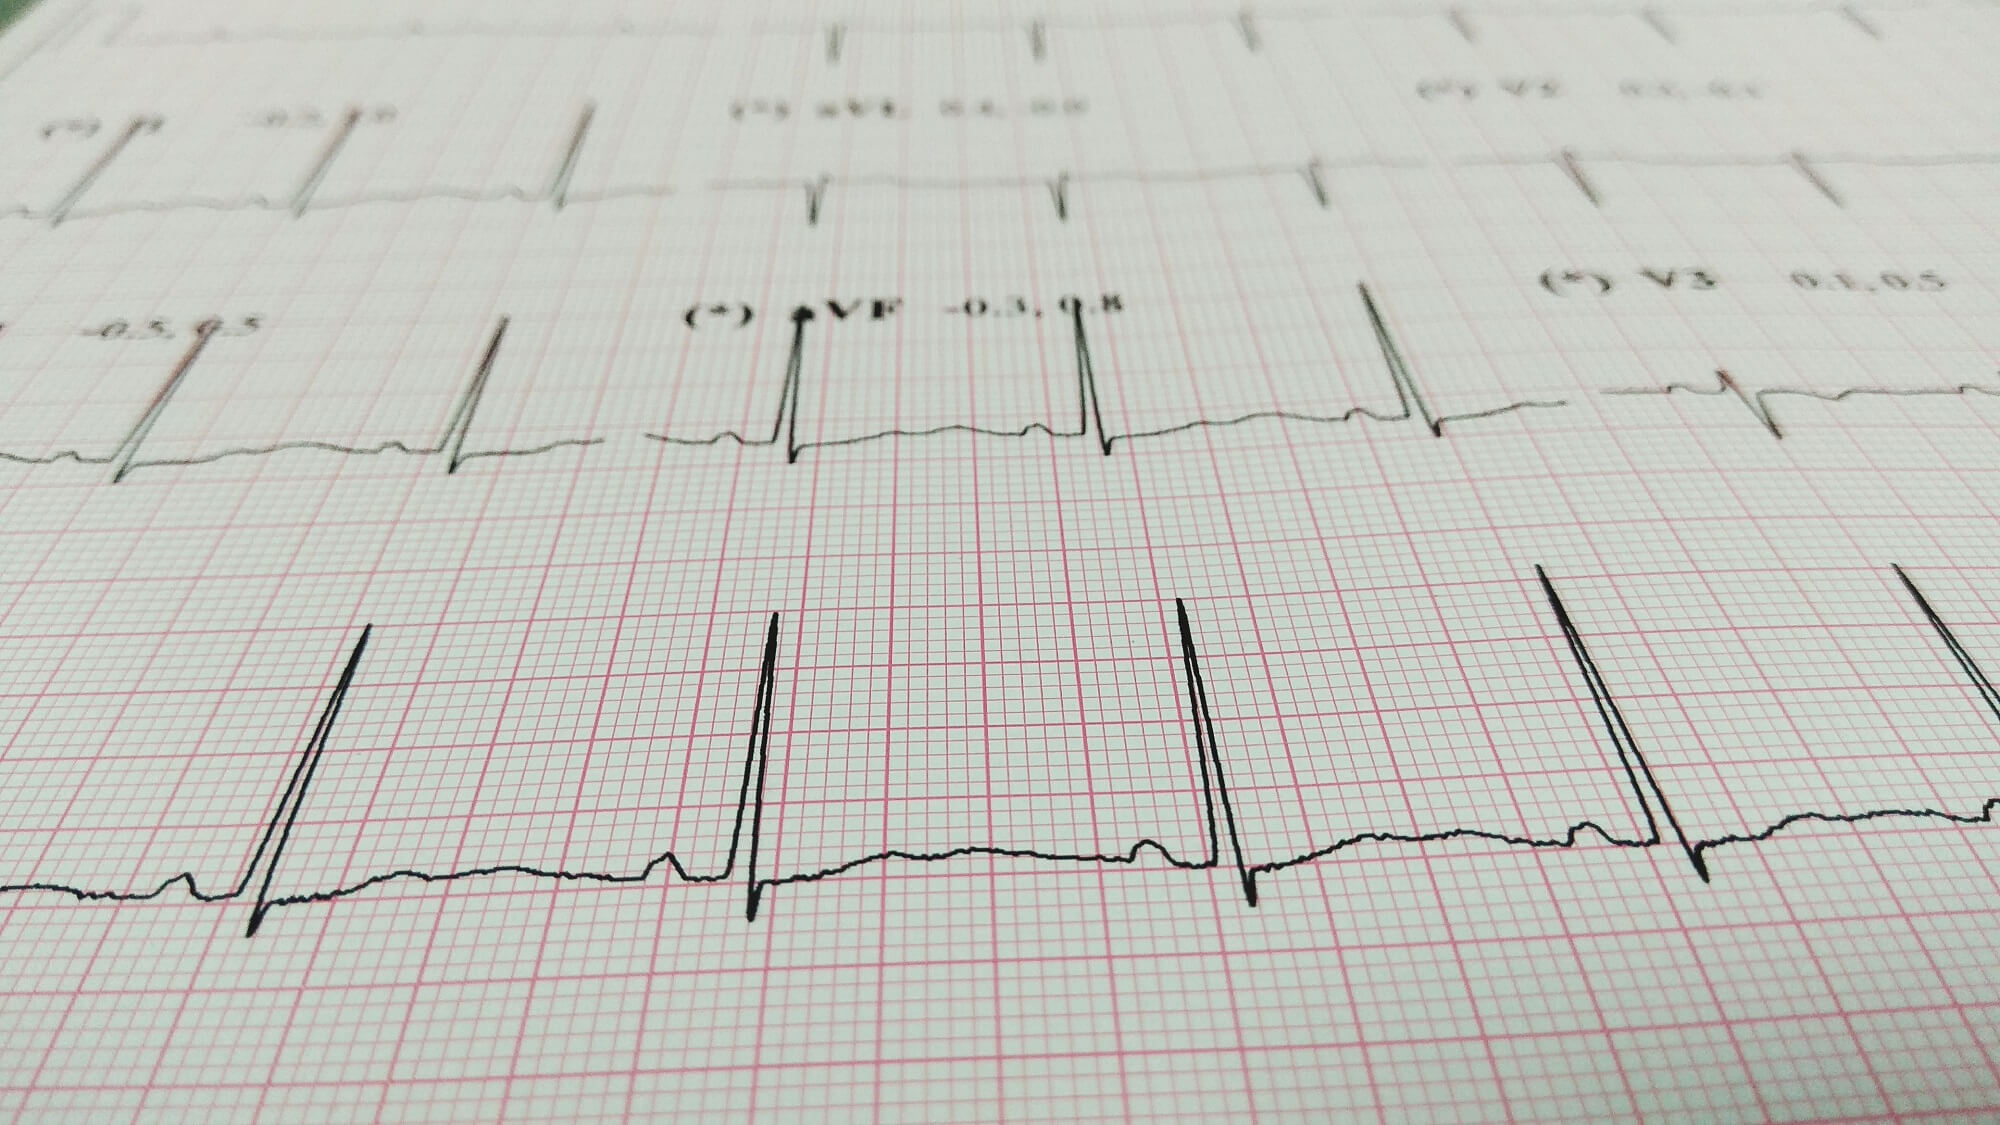 Artificial Intelligence Can Use Routine Ecgs To Identify